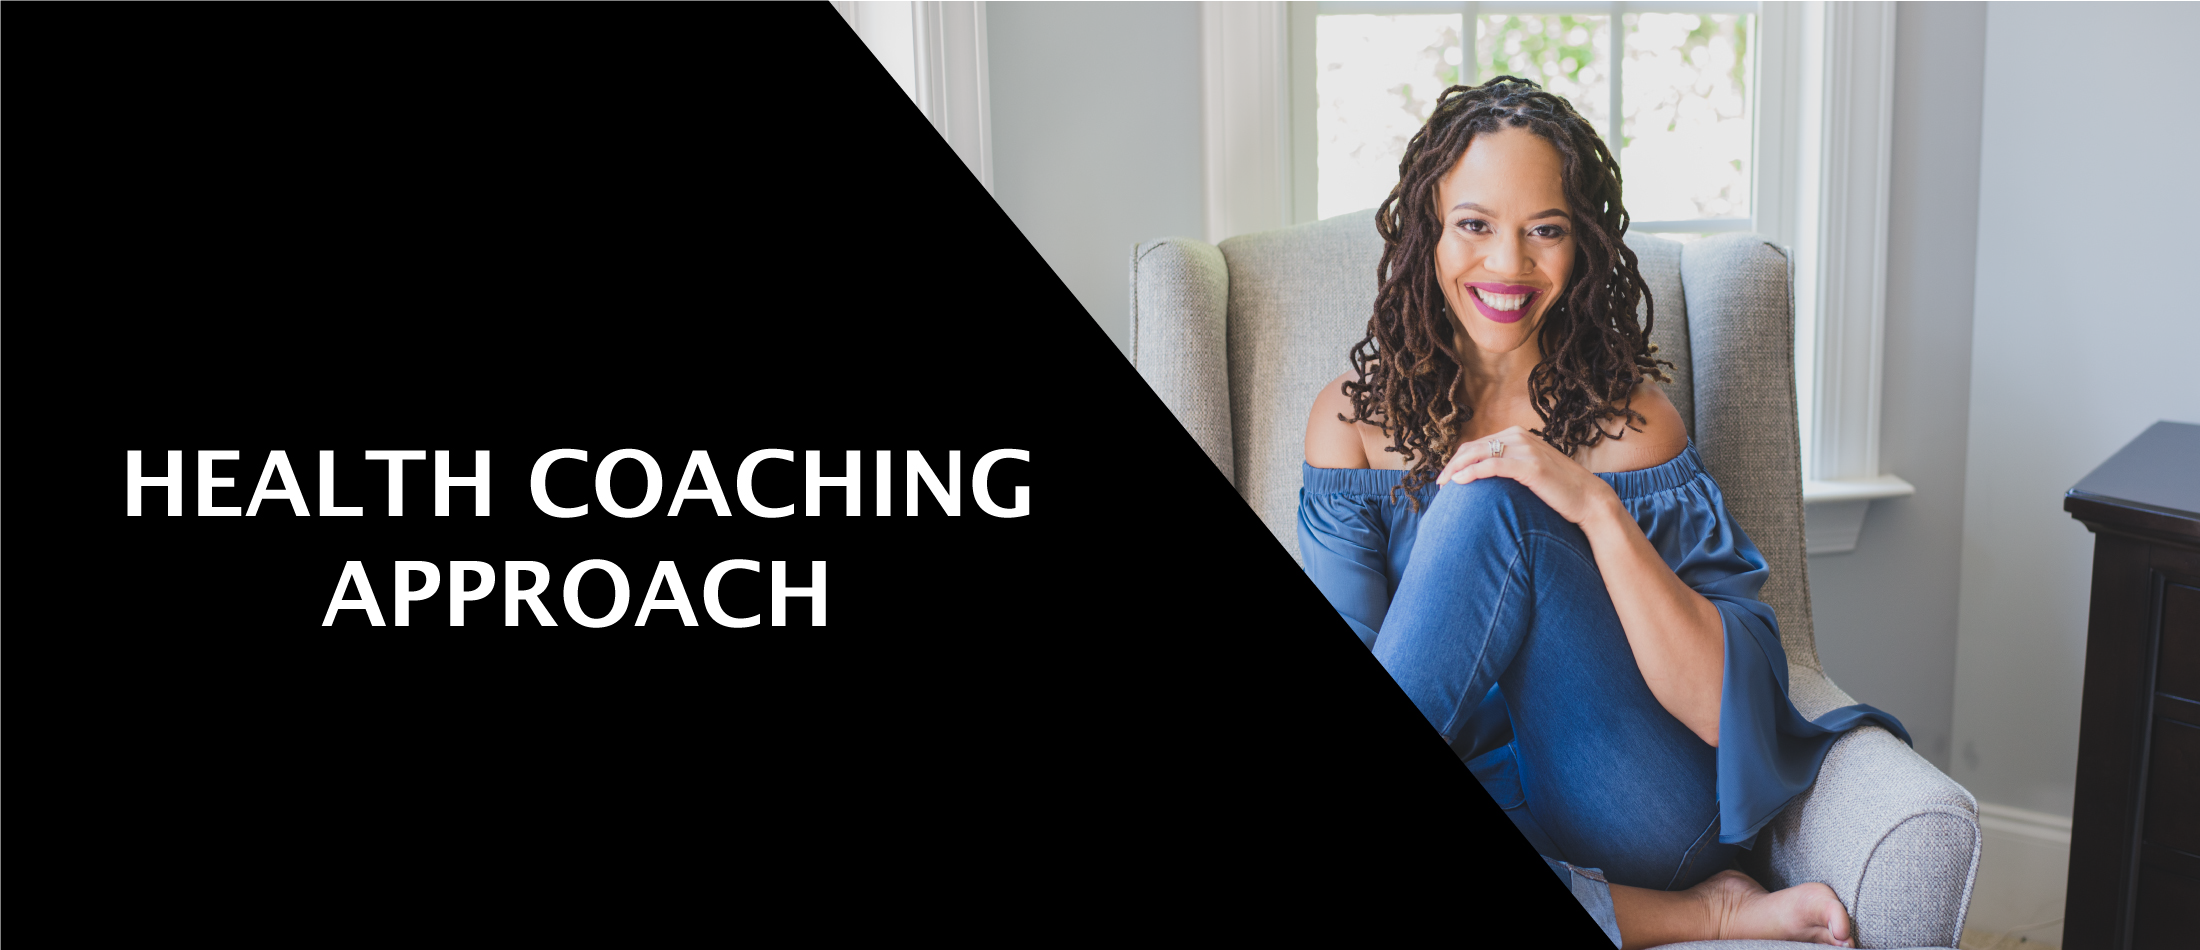 Health Coaching Approach Featured